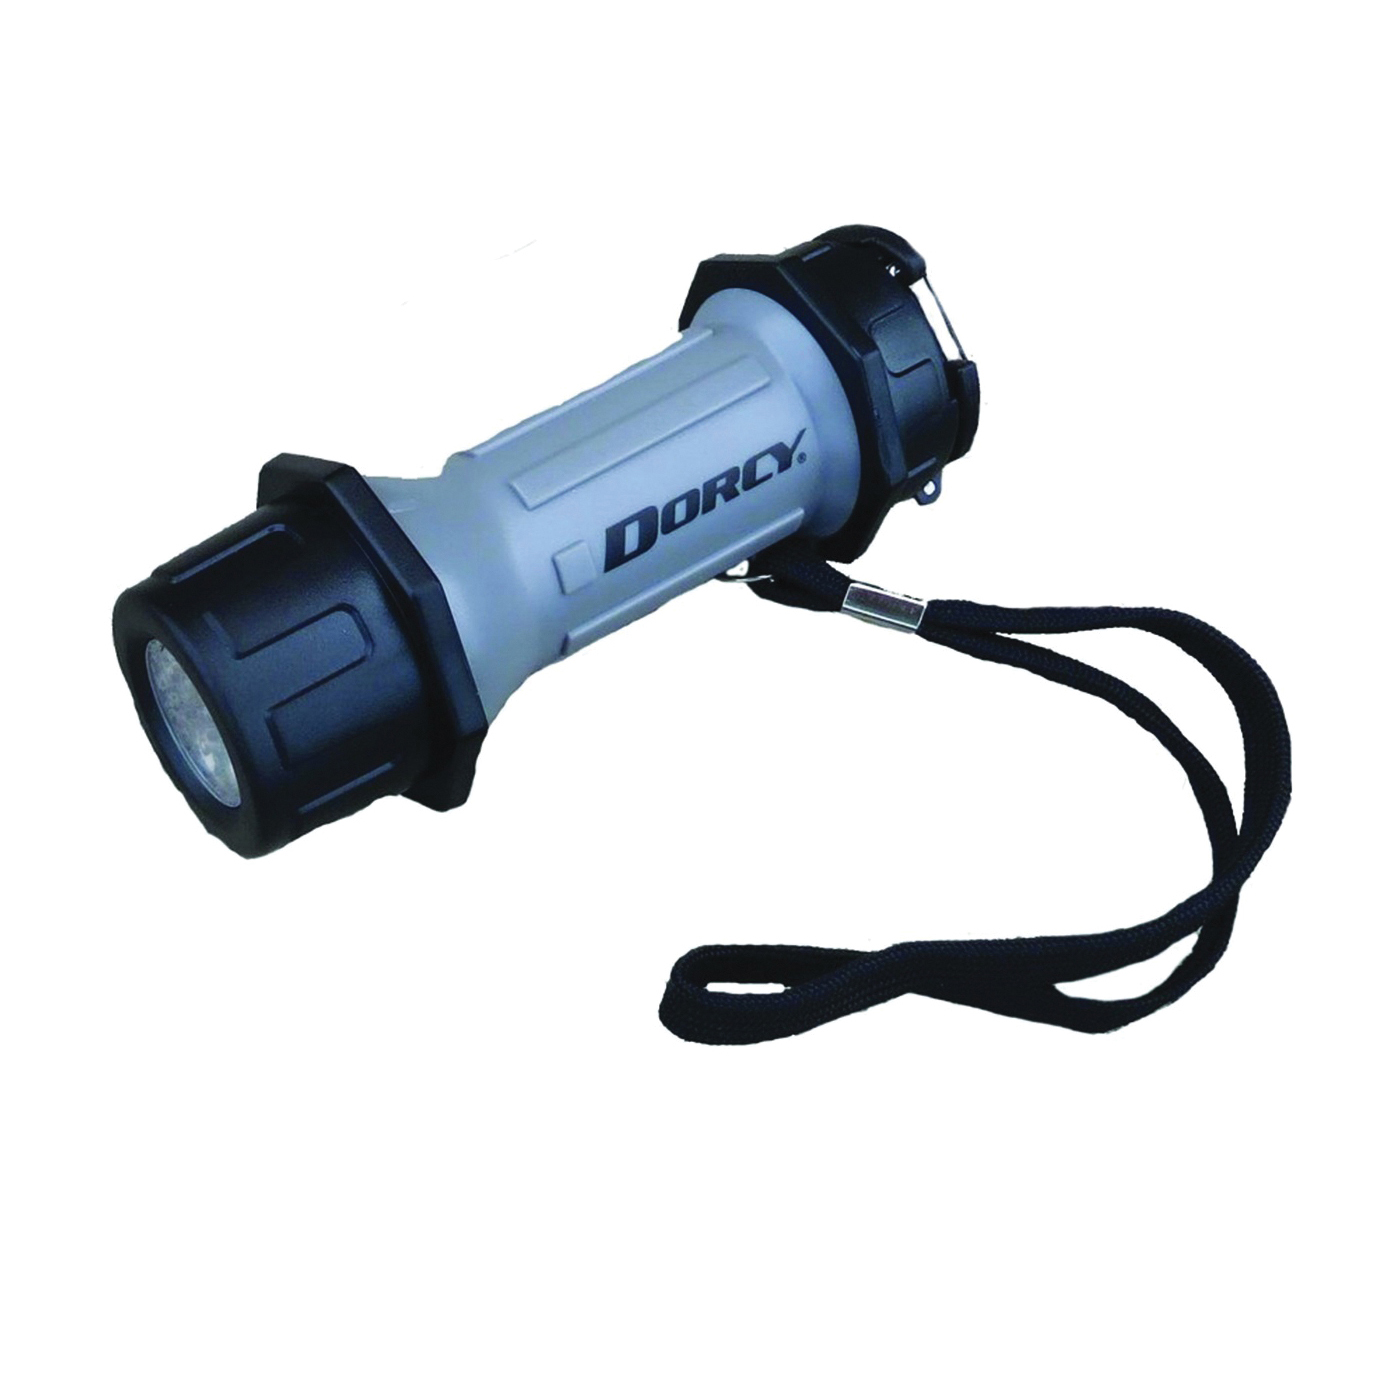 Picture of Dorcy 41-2602 Flashlight, AAA Battery, LED Lamp, 42 Lumens, 32 m Beam Distance, 15 hr Run Time, Gray